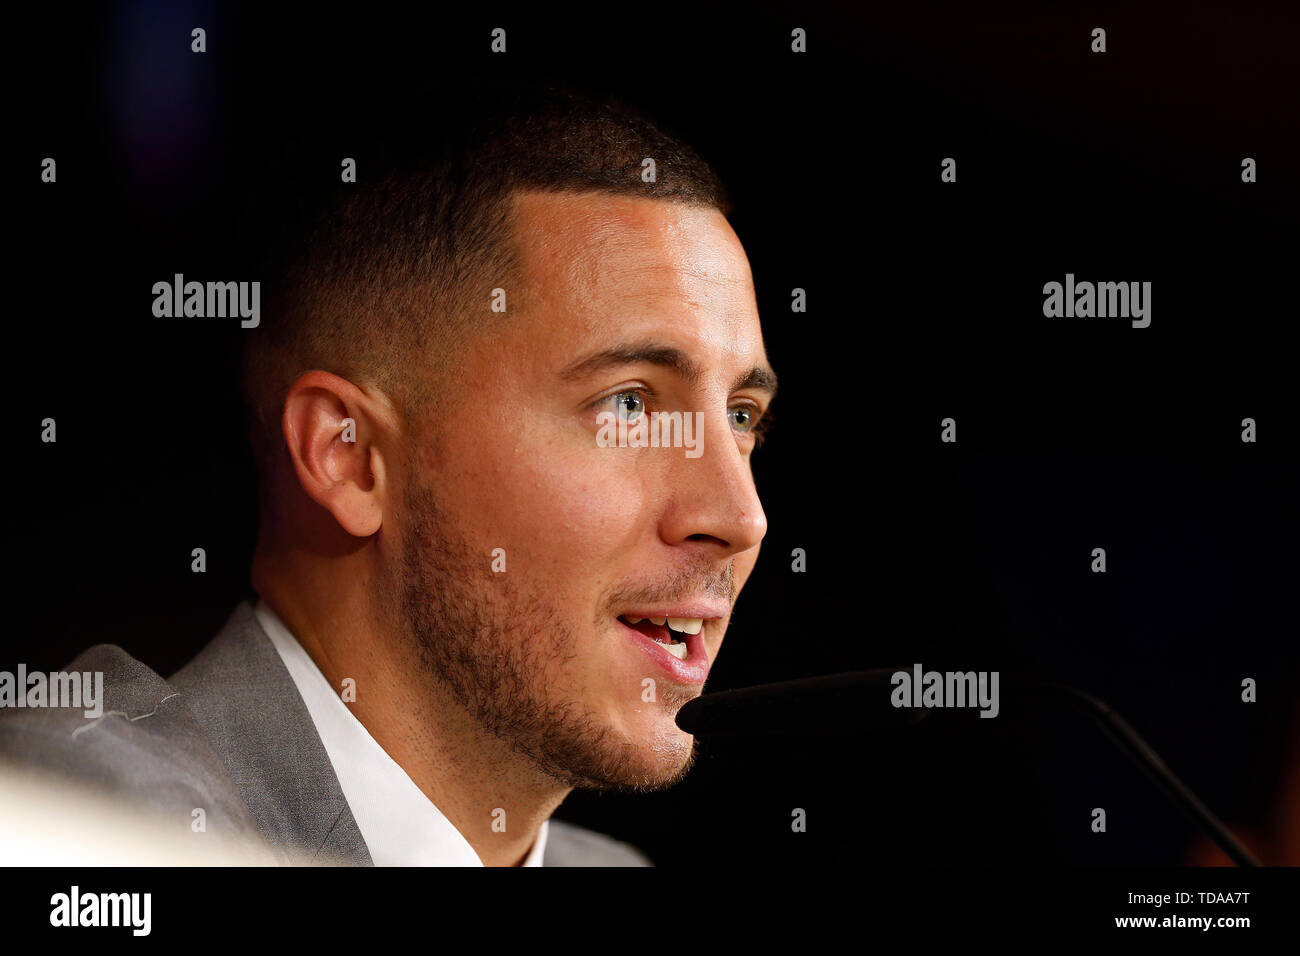 Madrid, Spain. 13th June, 2019. Eden Hazard speaks during his presentation as a new player of Real Madrid CF at the Estadio Santiago Bernabeu in Madrid. Credit: SOPA Images Limited/Alamy Live News - Stock Image